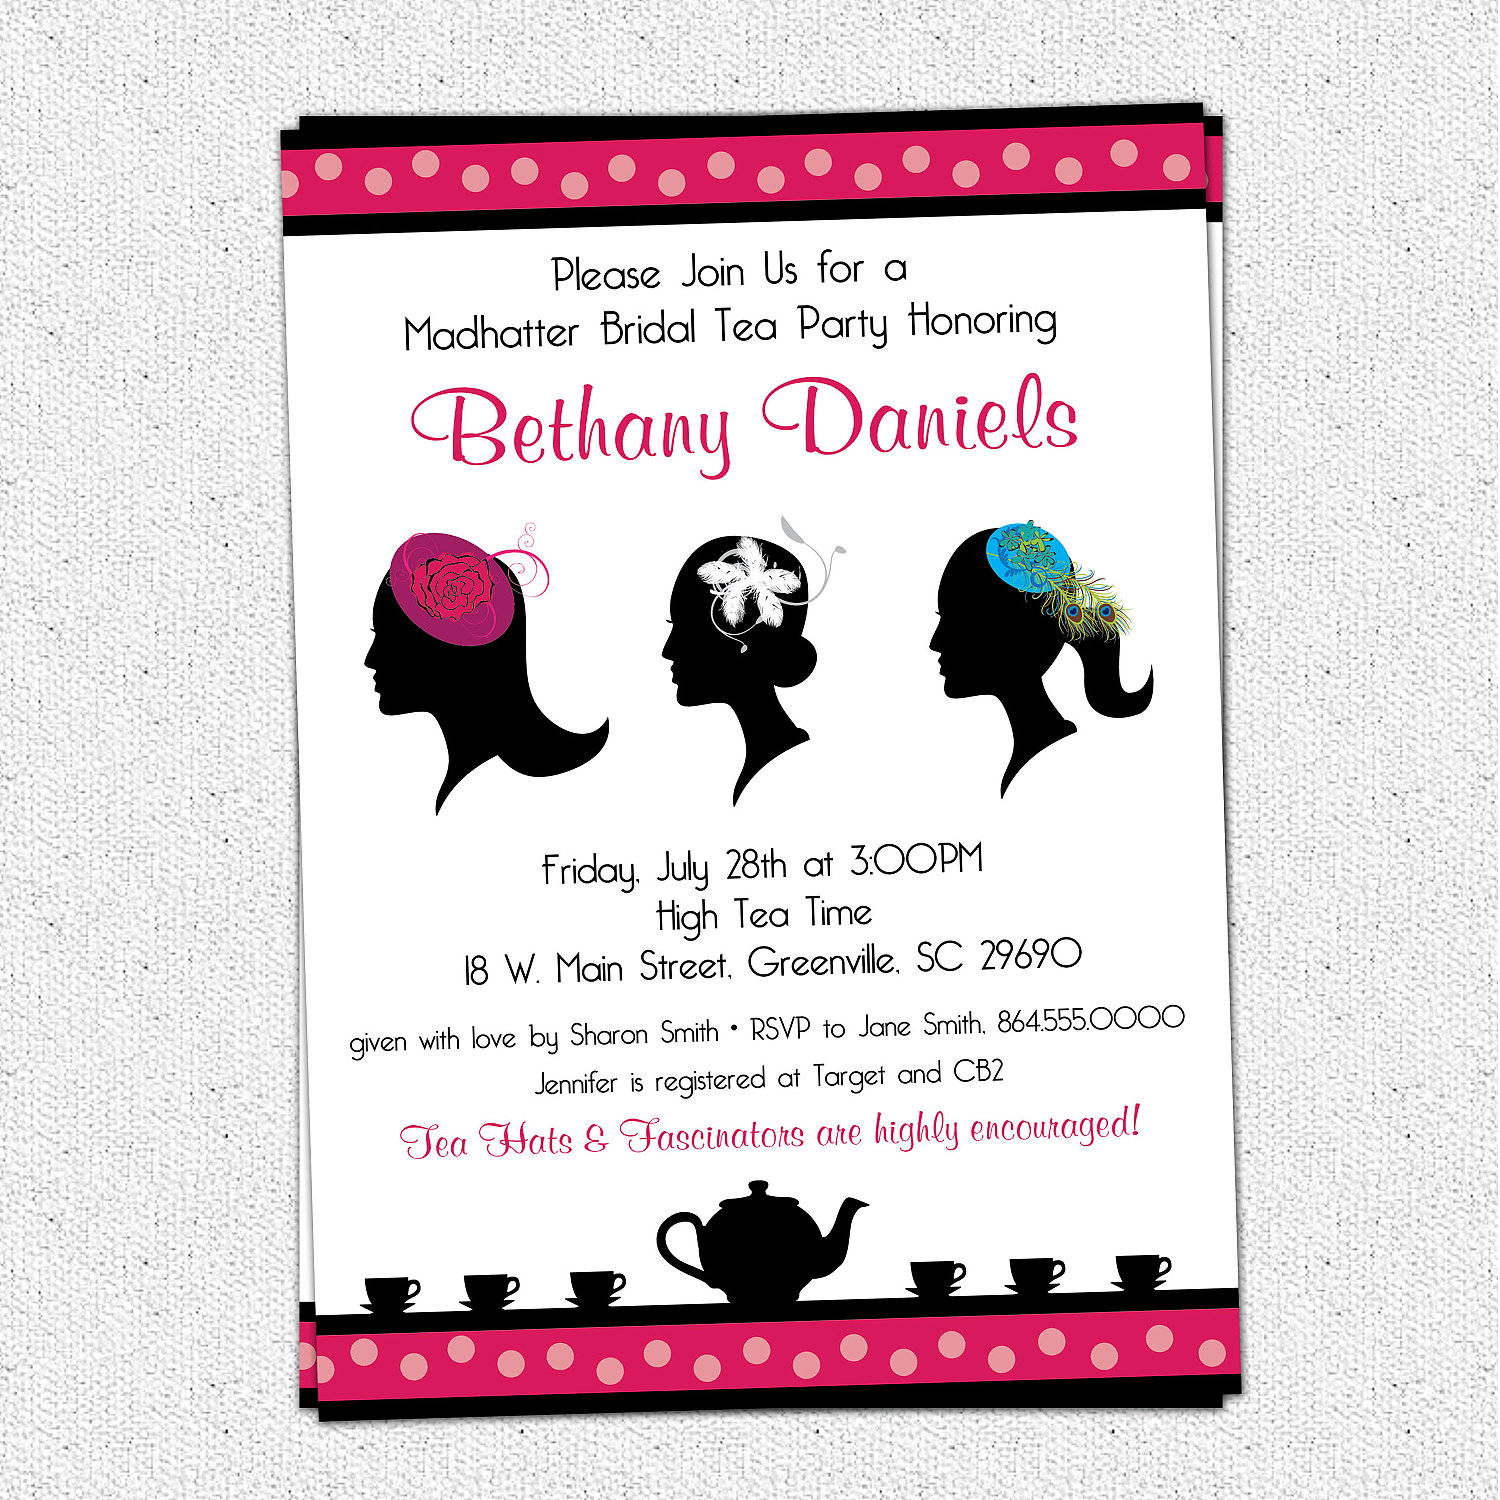 Madhatter Mad Hatter Tea Party Invitations Fascinator Hats Royalty Bridal Shower Baby